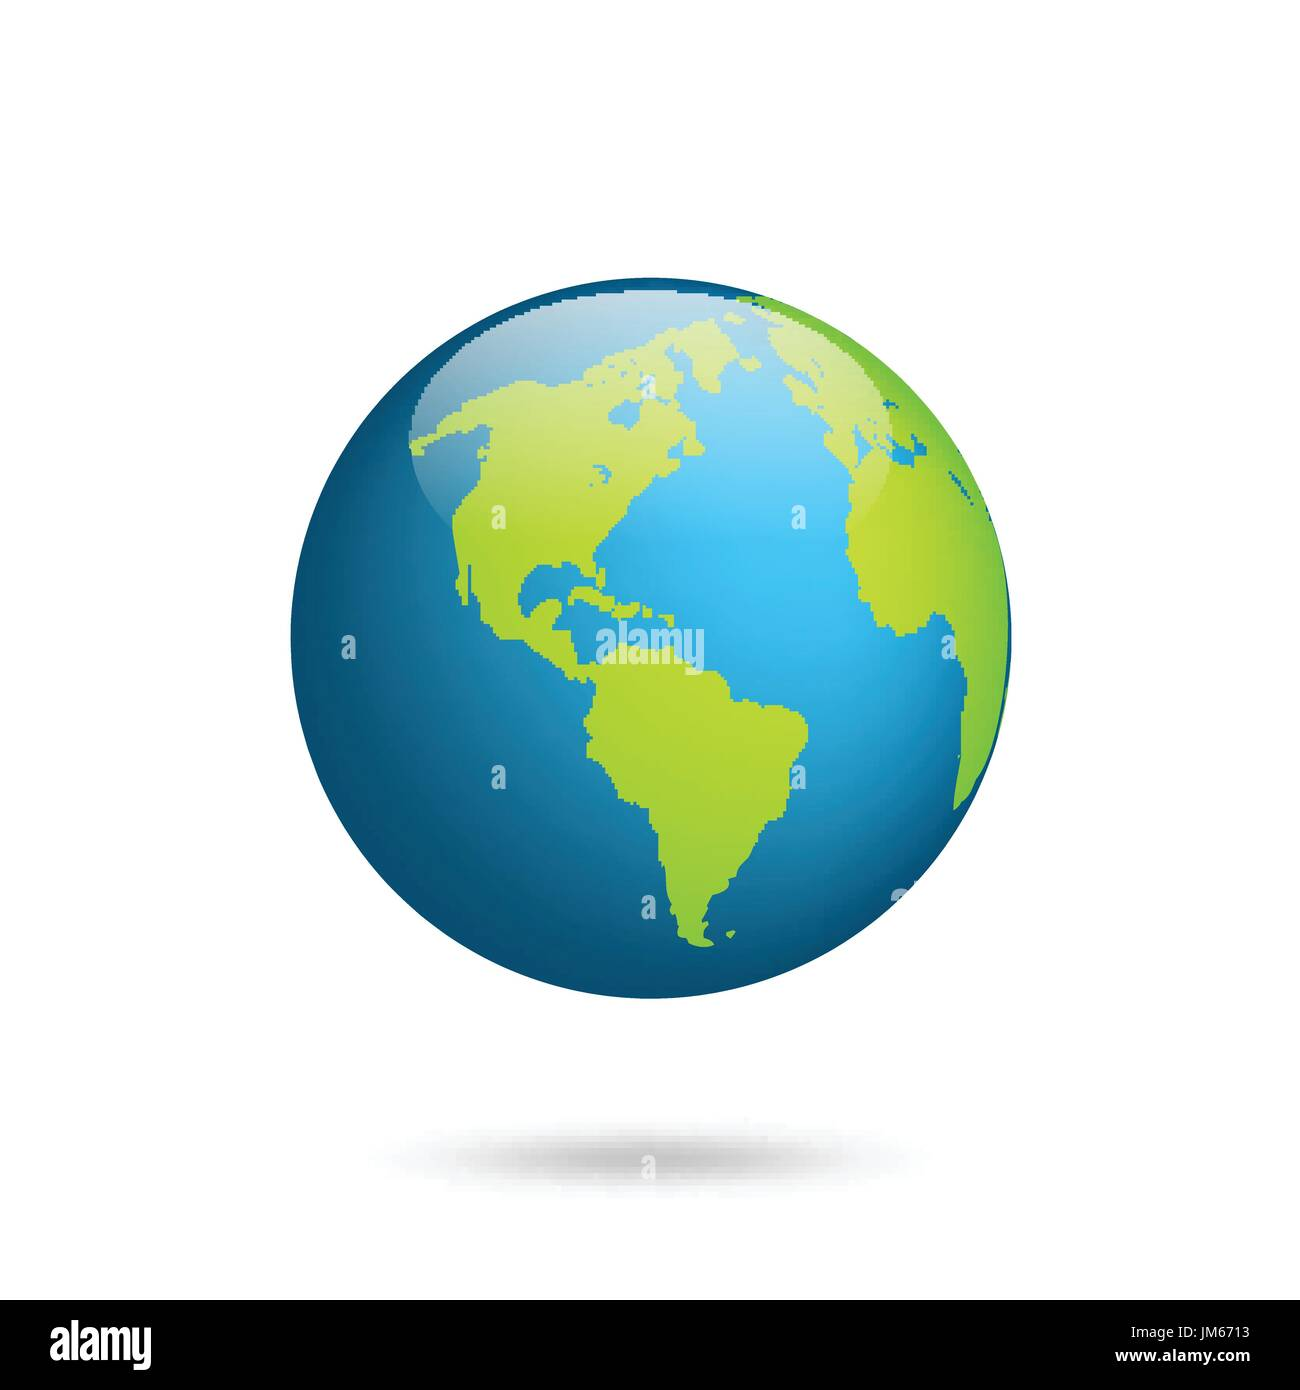 Earth globe world map set planet with continentsrica asia world map set planet with continentsrica asia australia europe north america and south america gumiabroncs Choice Image